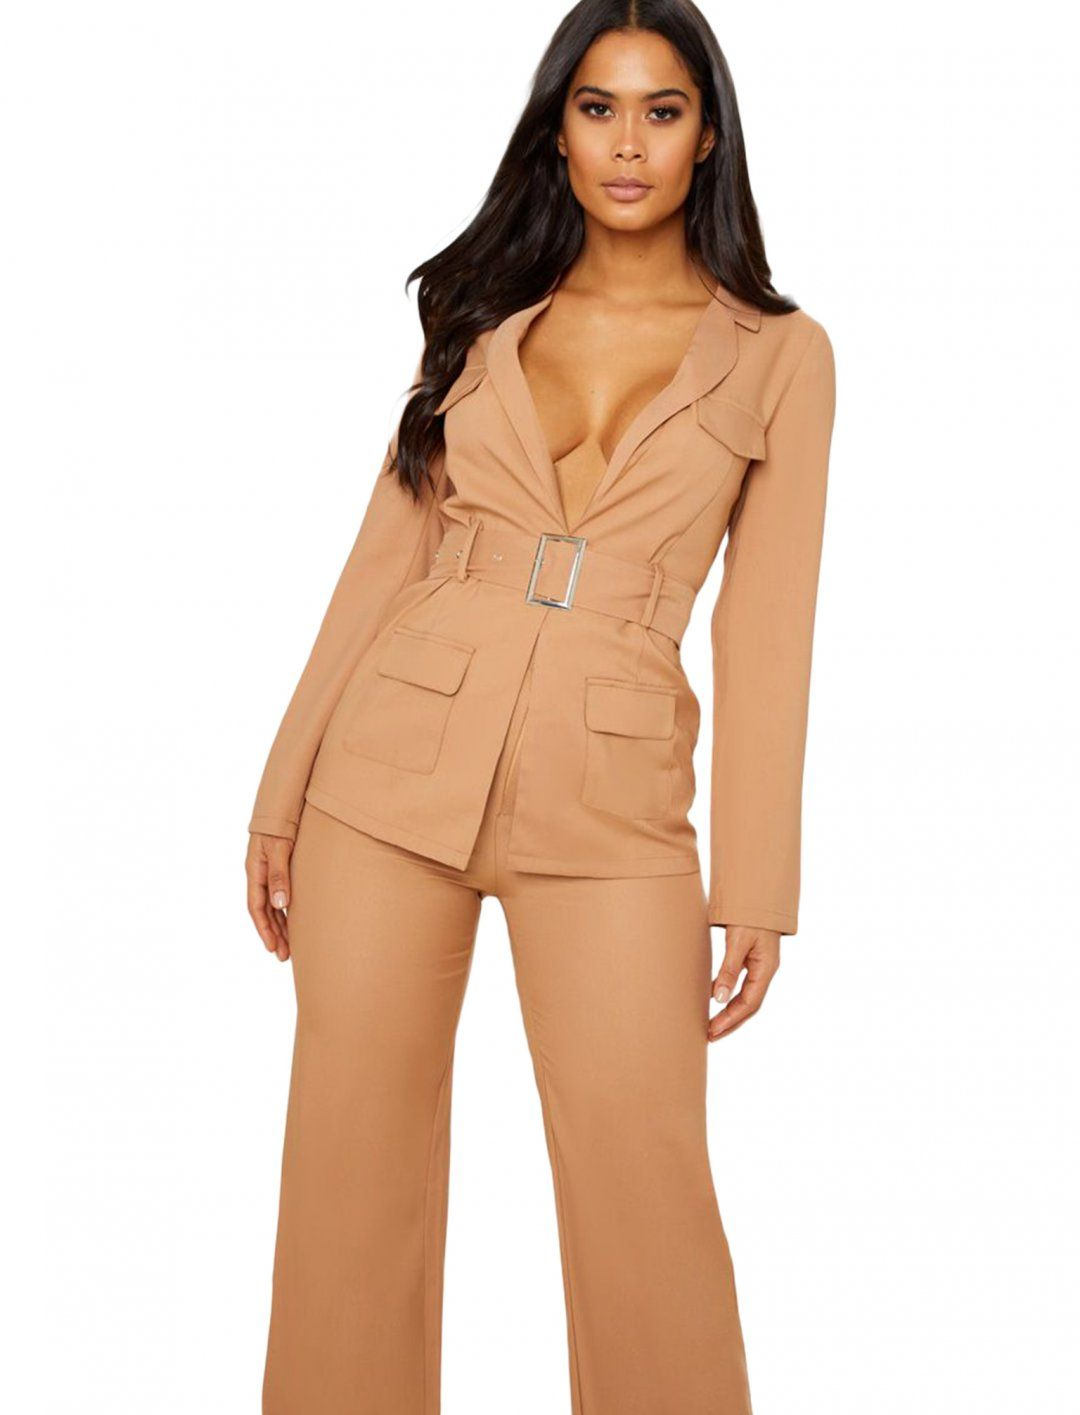 b0f9c959 Belted Blazer, In Camel, Utility Style from Pretty Little Thing ...